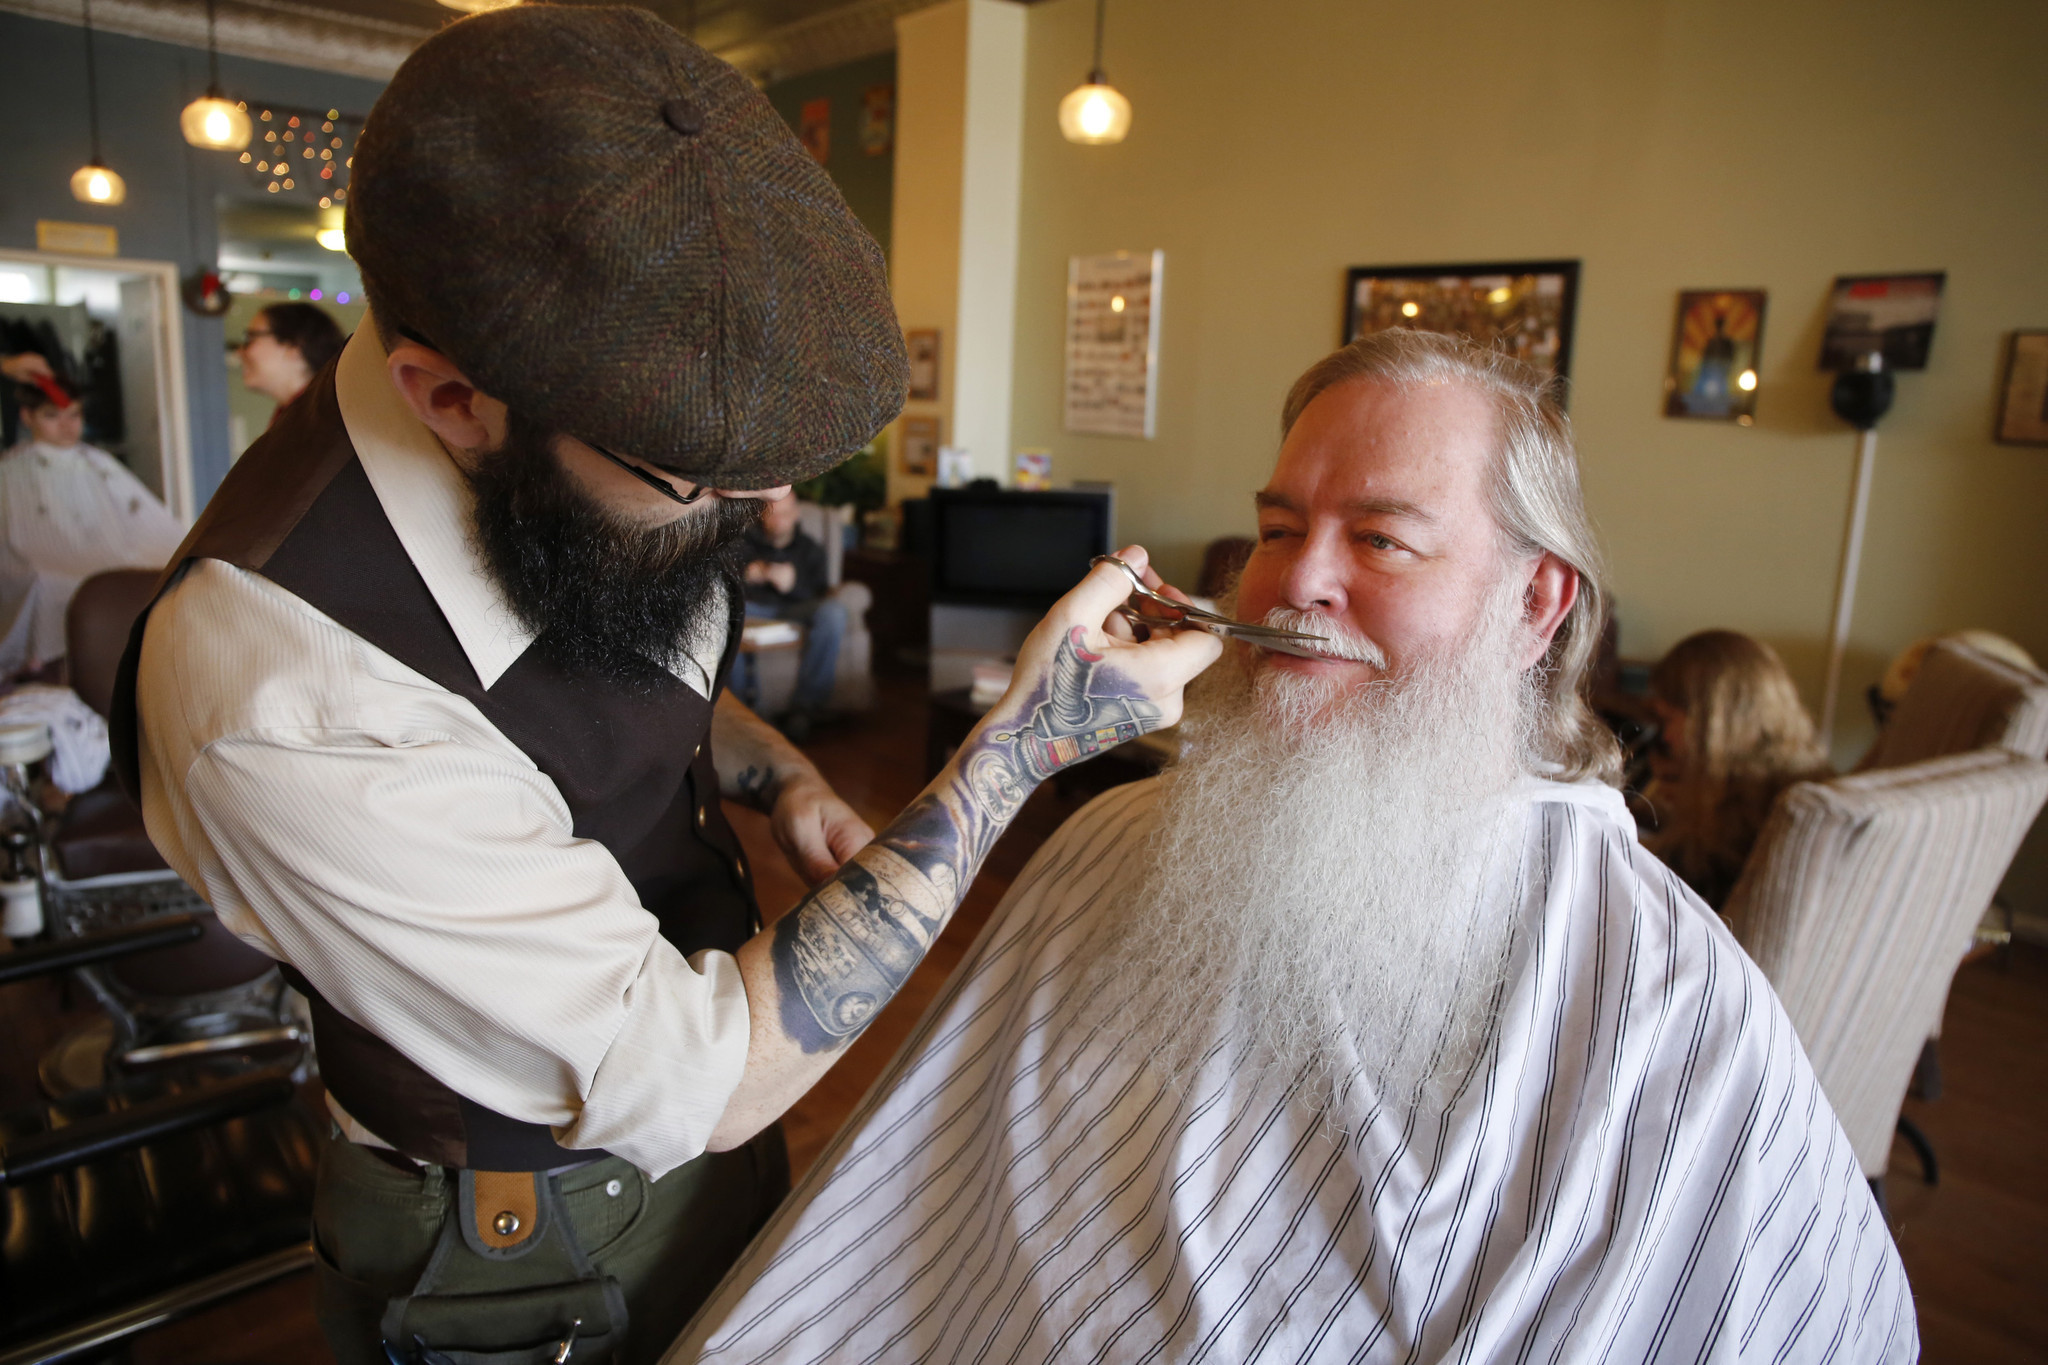 Specialty barbers focus on beards as facial hair grows trendy  Chicago Tribune